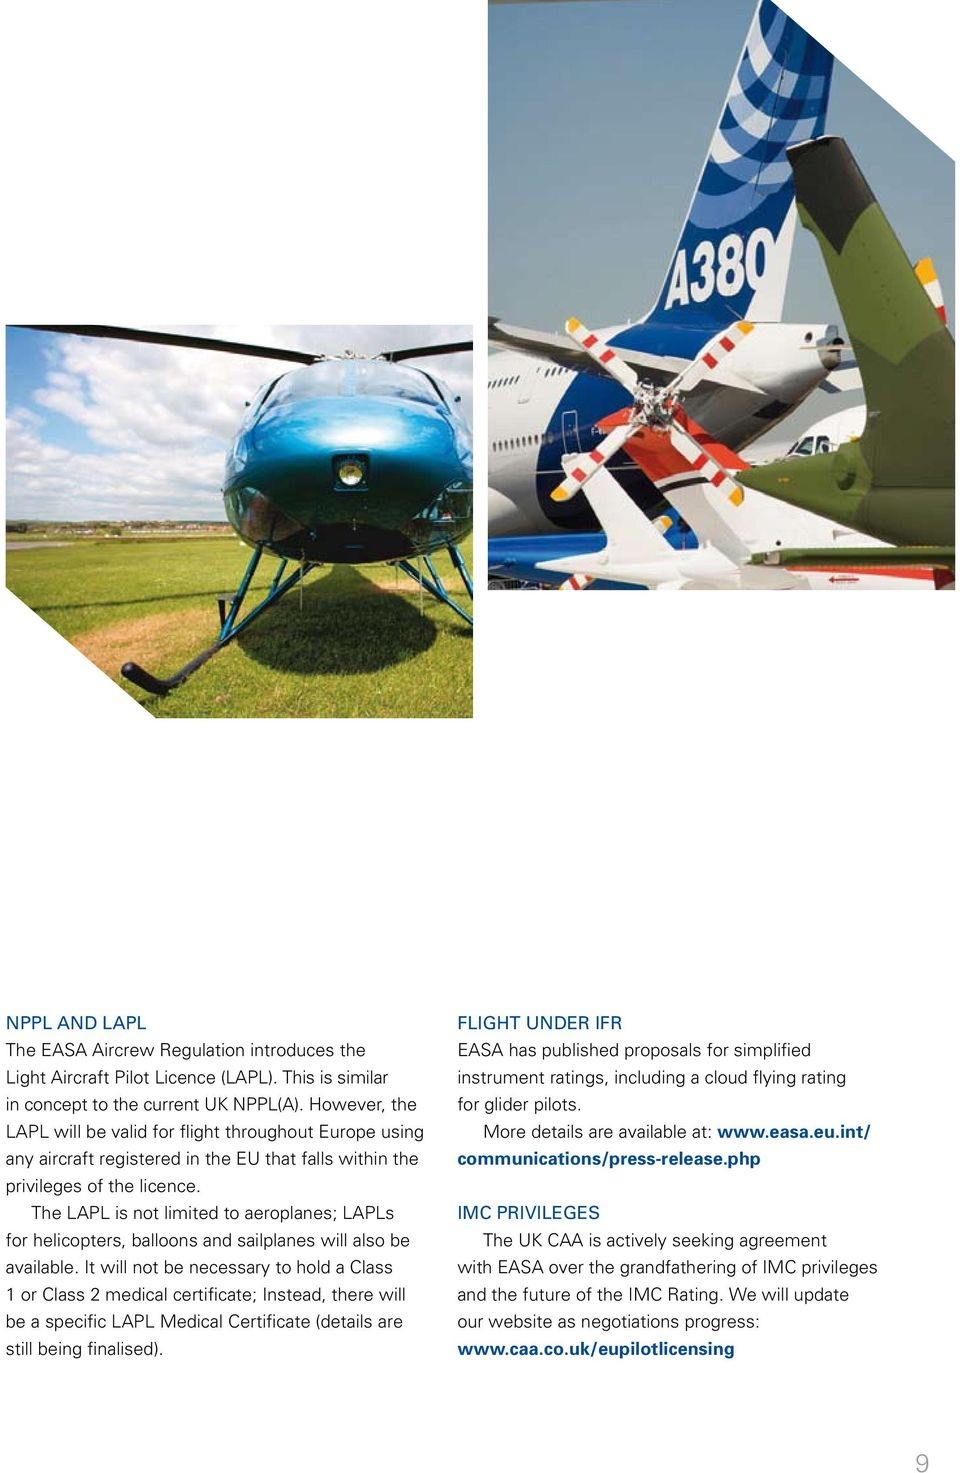 The LAPL is not limited to aeroplanes; LAPLs for helicopters, balloons and sailplanes will also be available.